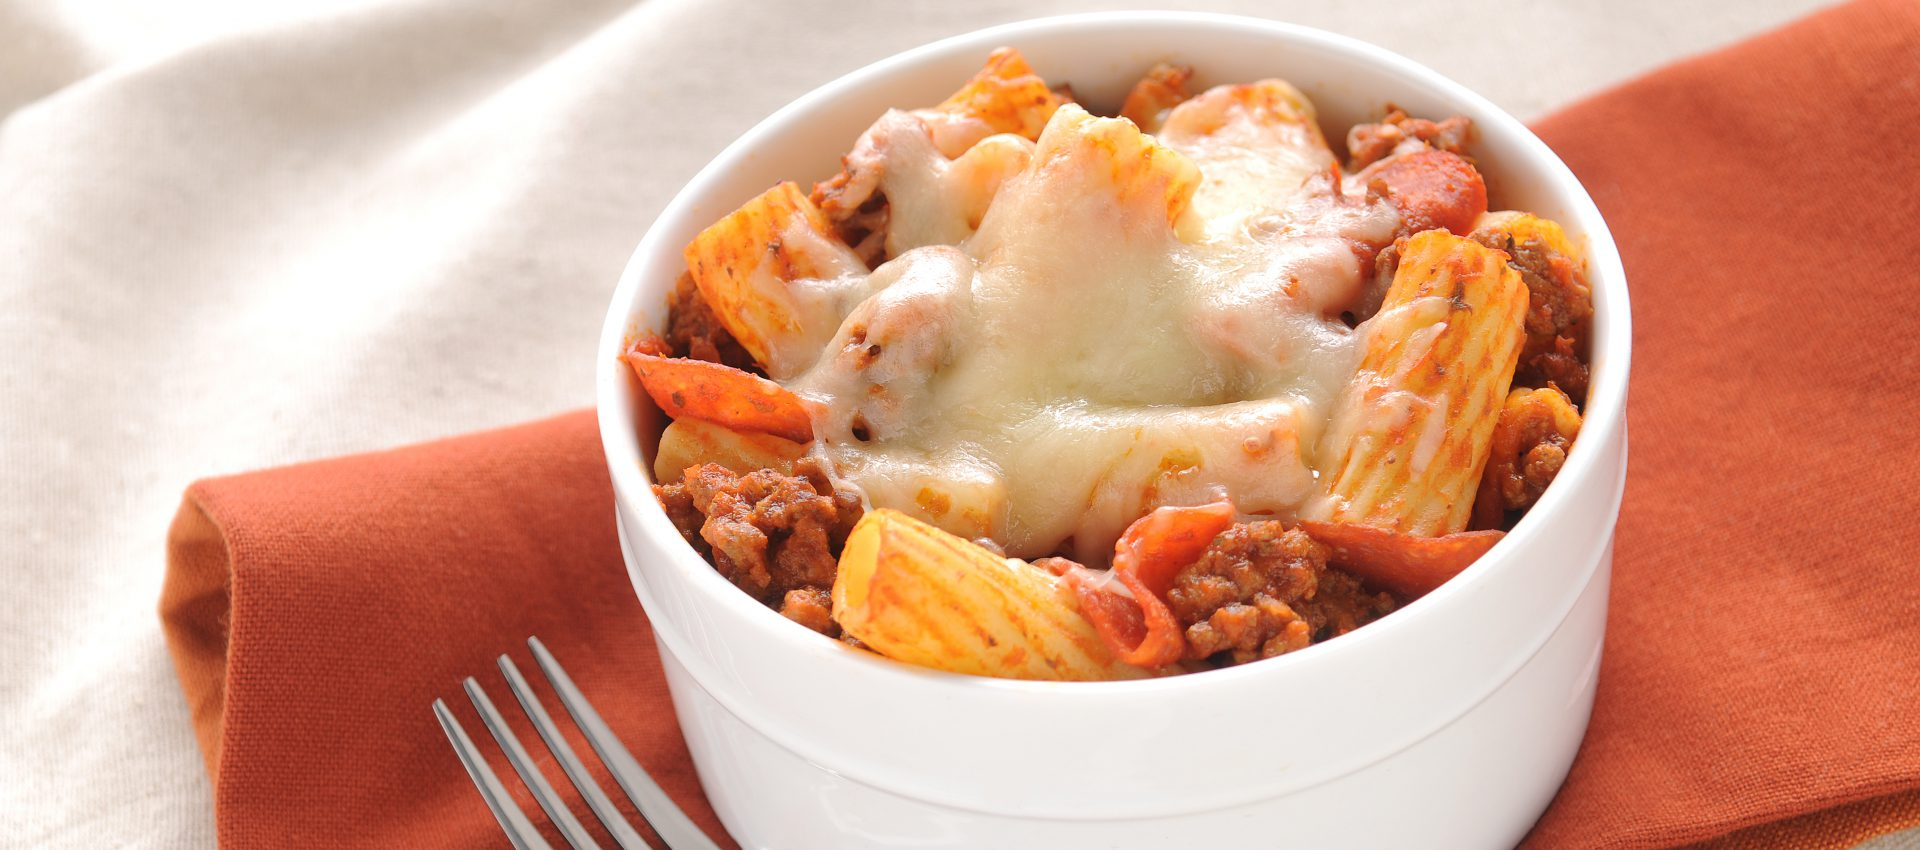 Pizza pasta with rigatoni, Italian sausage, pepperoni, sauce and cheese